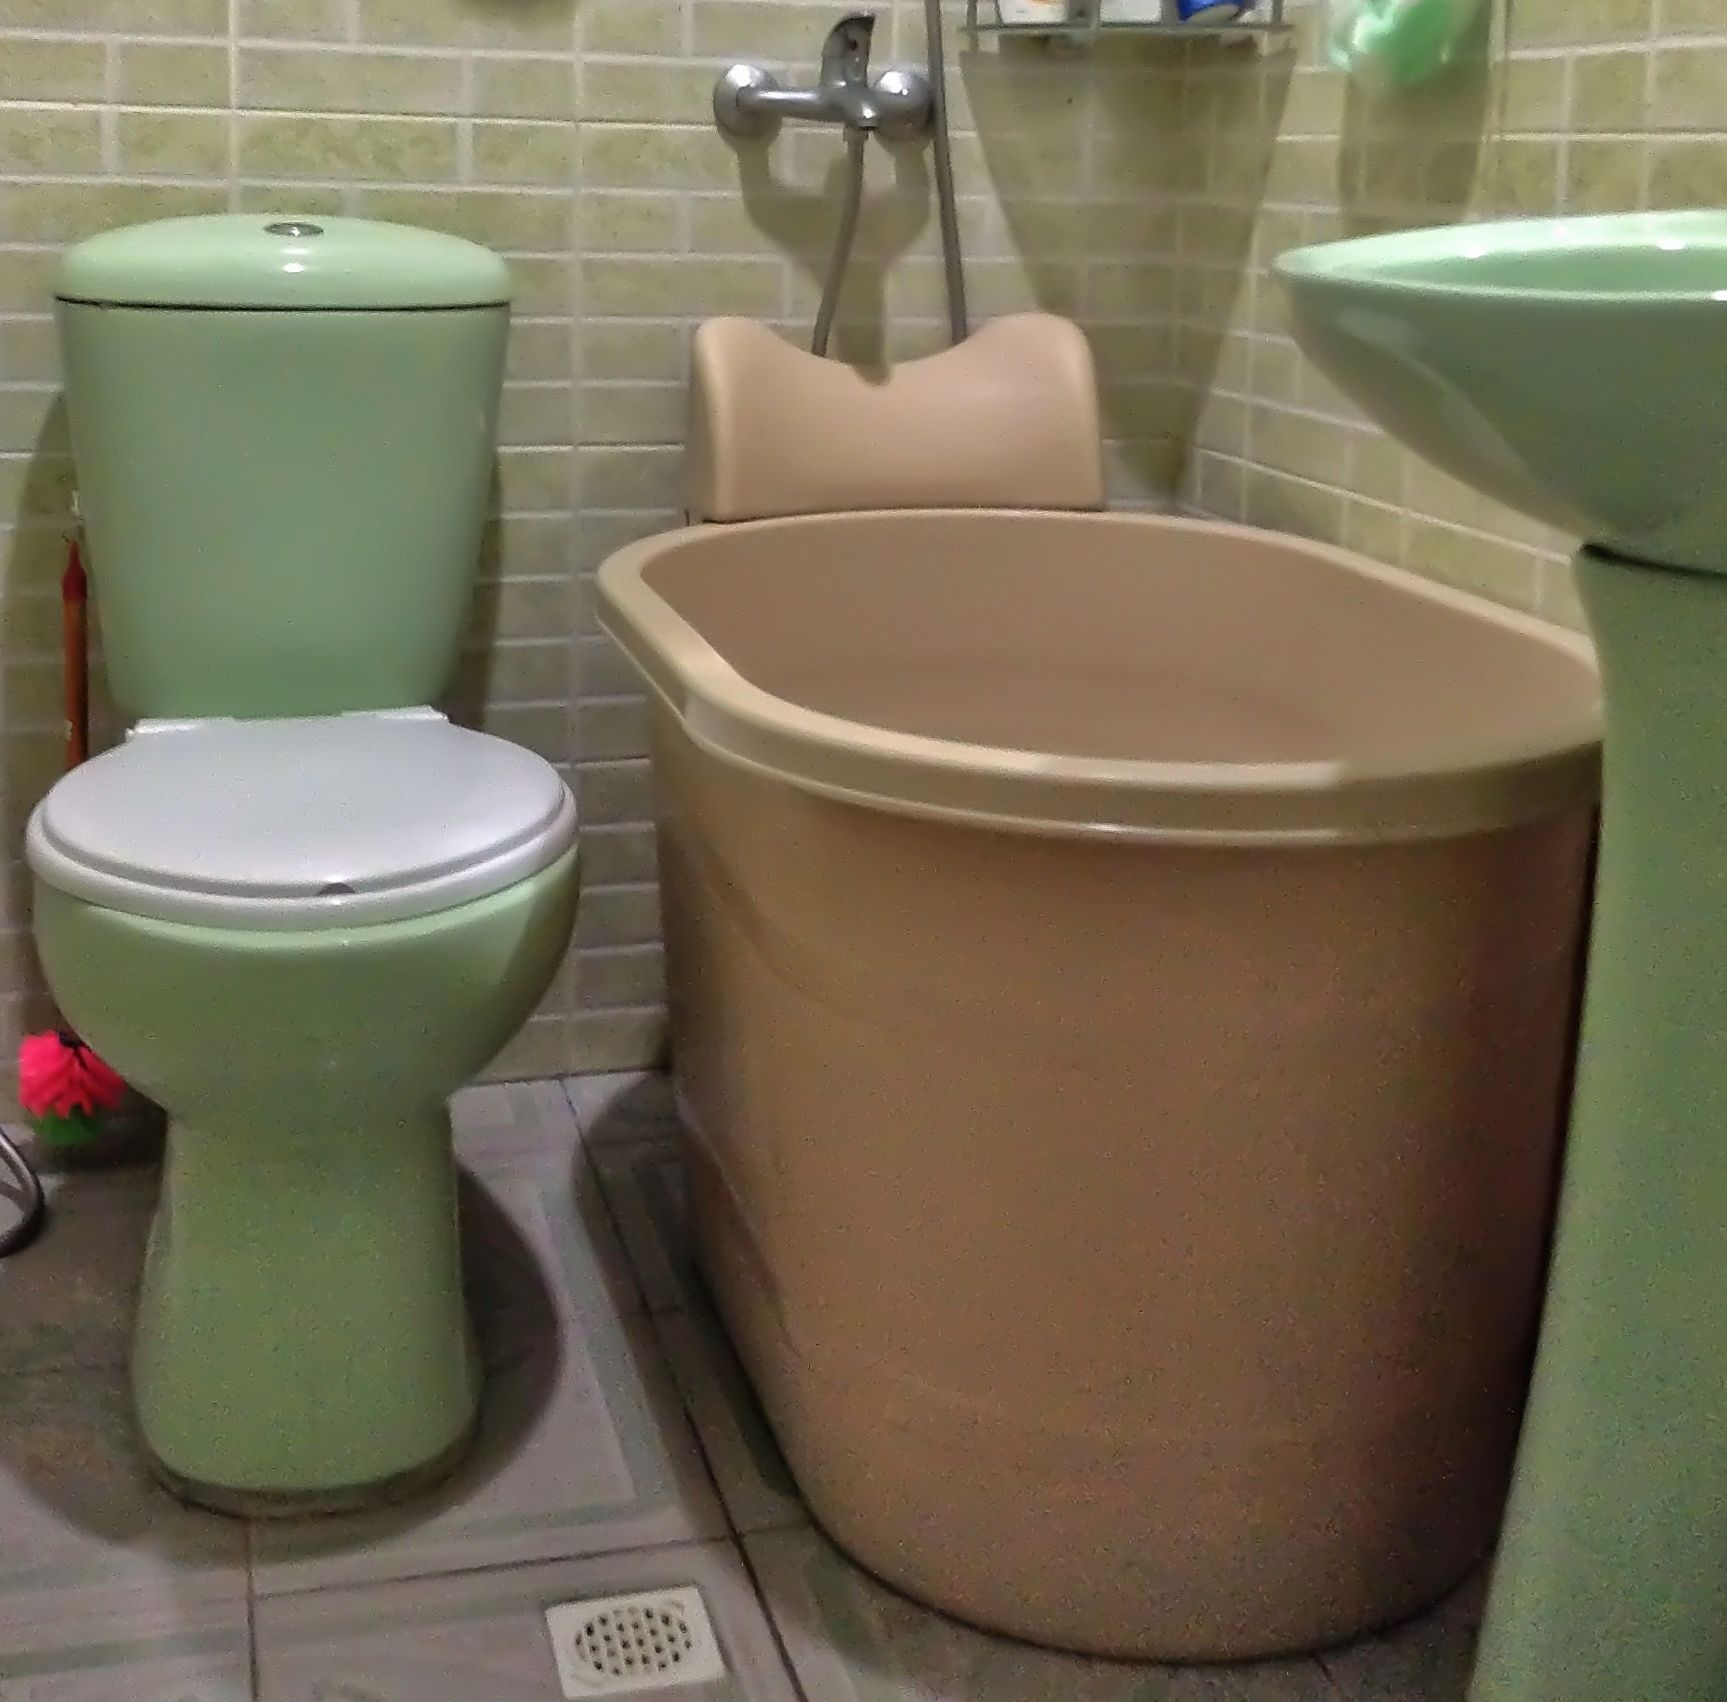 Some EC larger bathroom area may fit this size tub. Description from ...